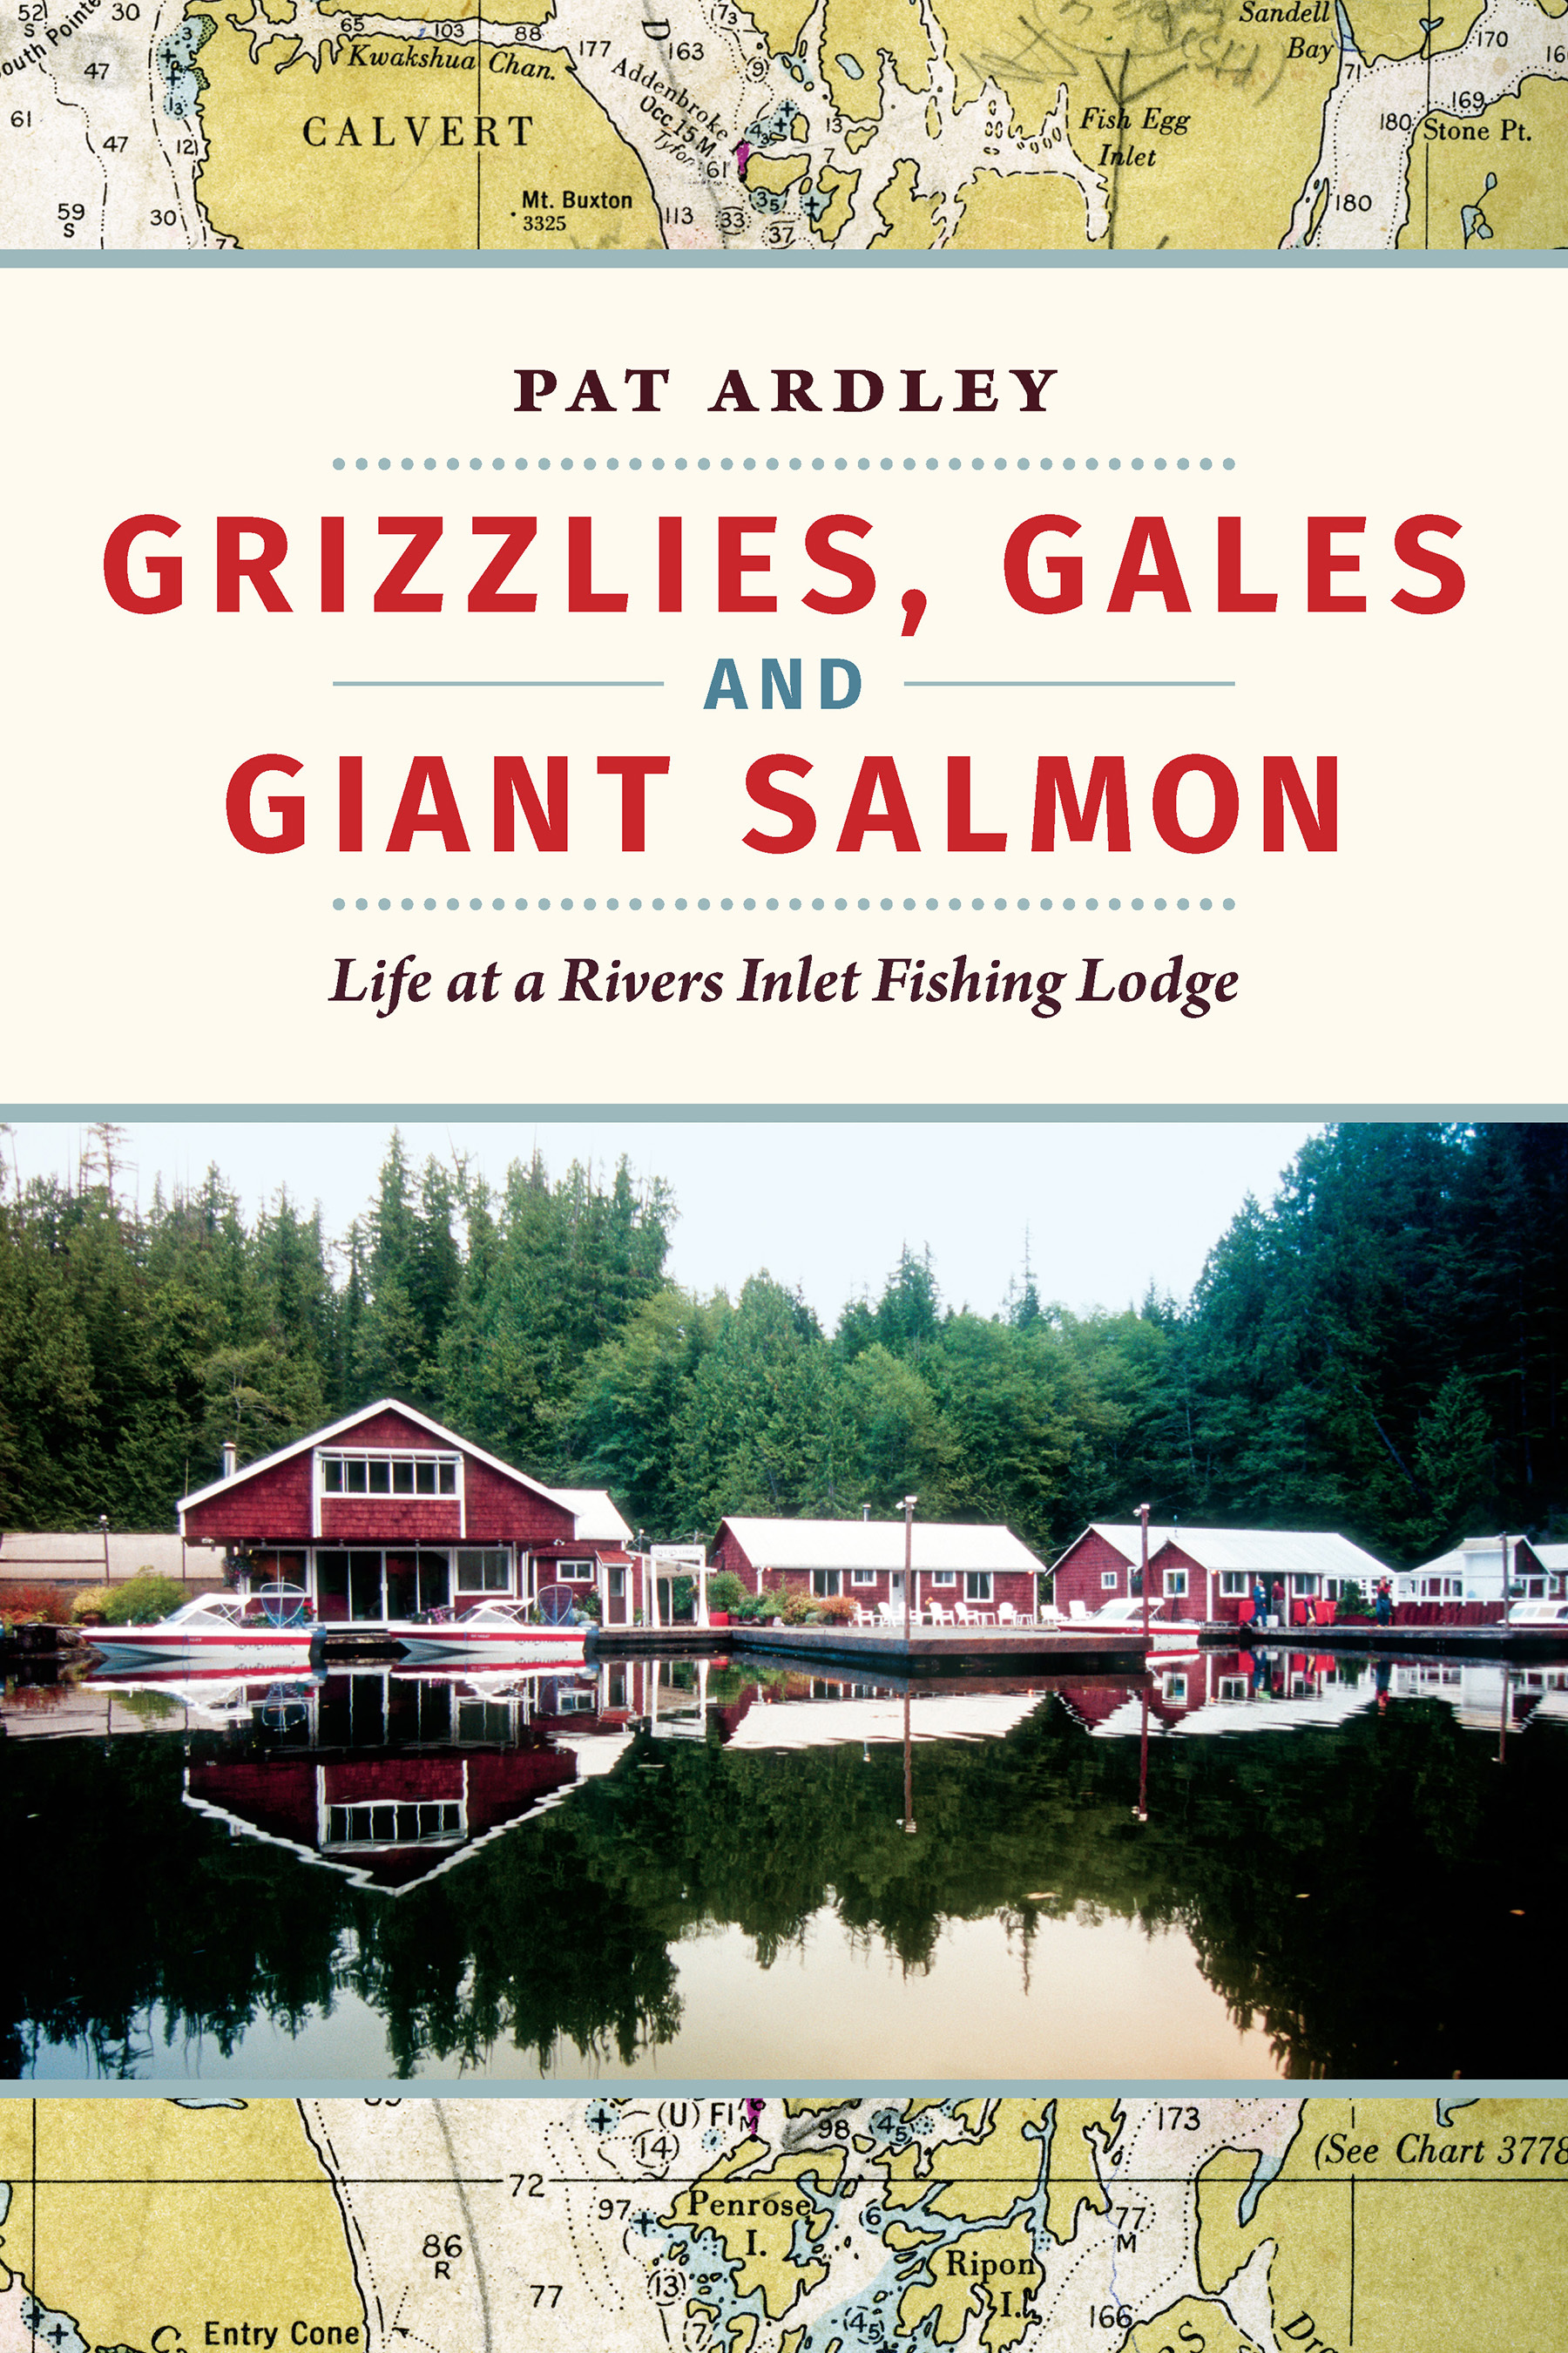 Grizzlies, Gales and Giant Salmon Life at a Rivers Inlet Fishing Lodge